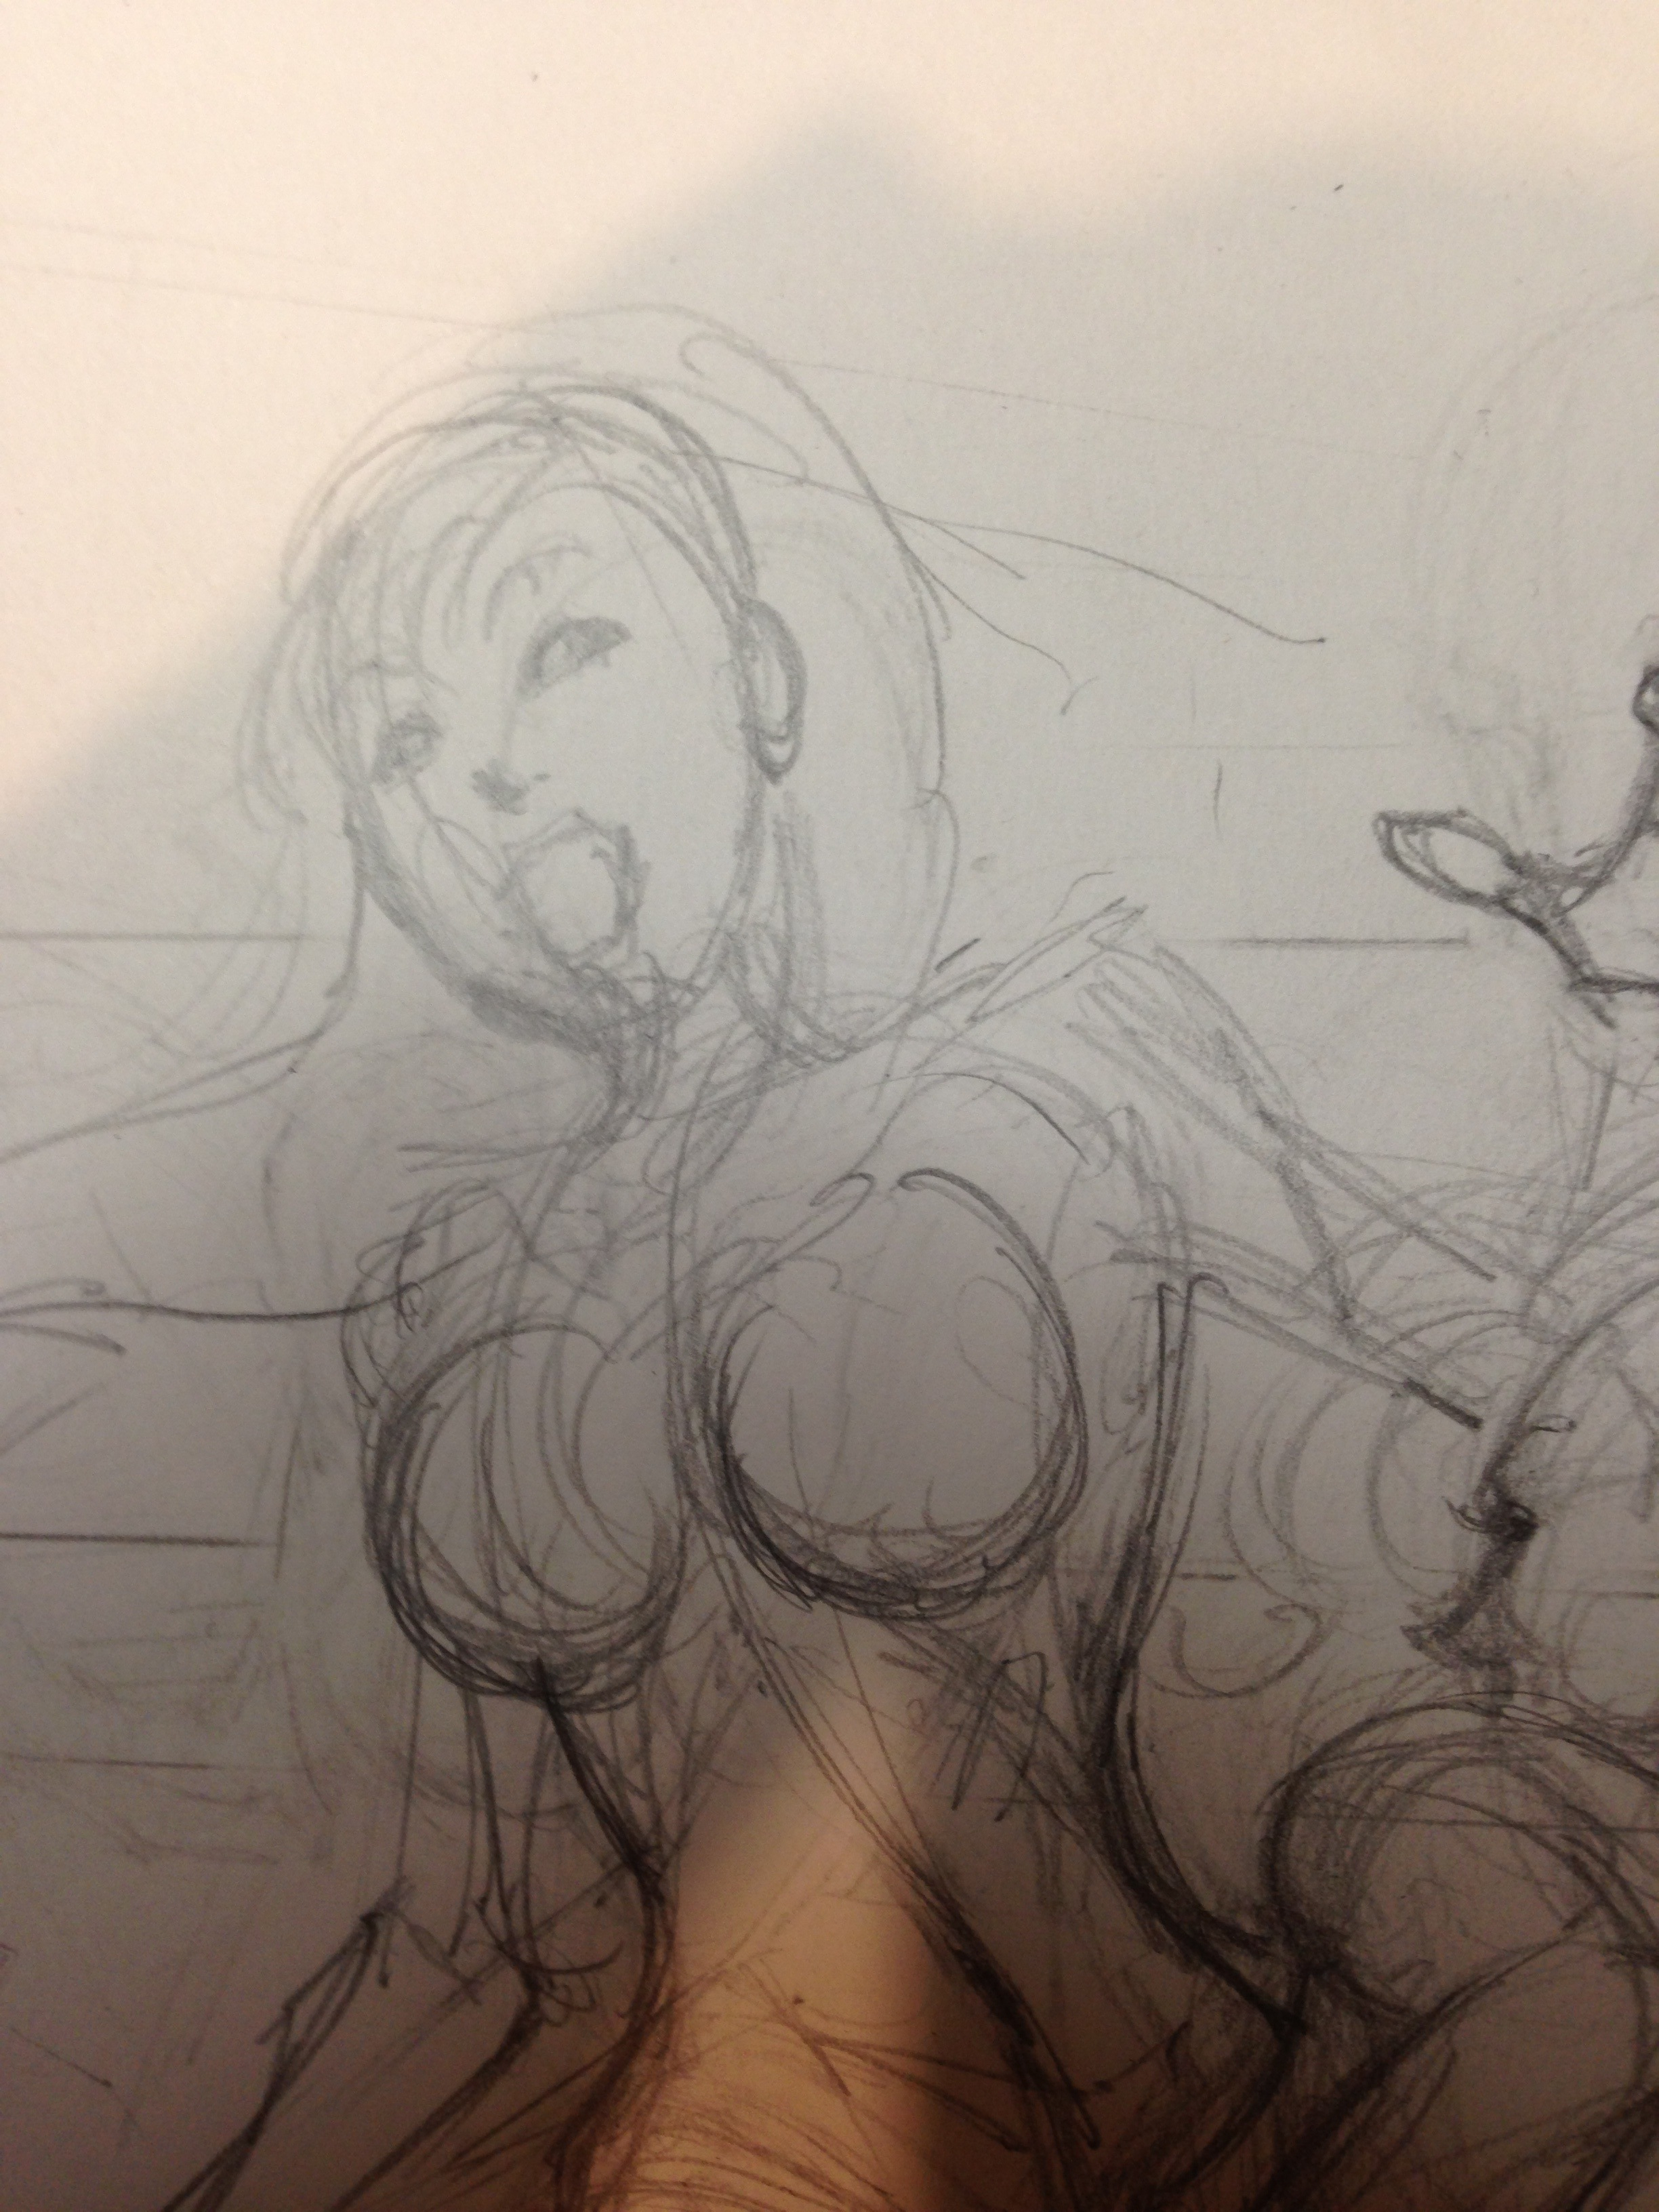 Pencil rough sketch.